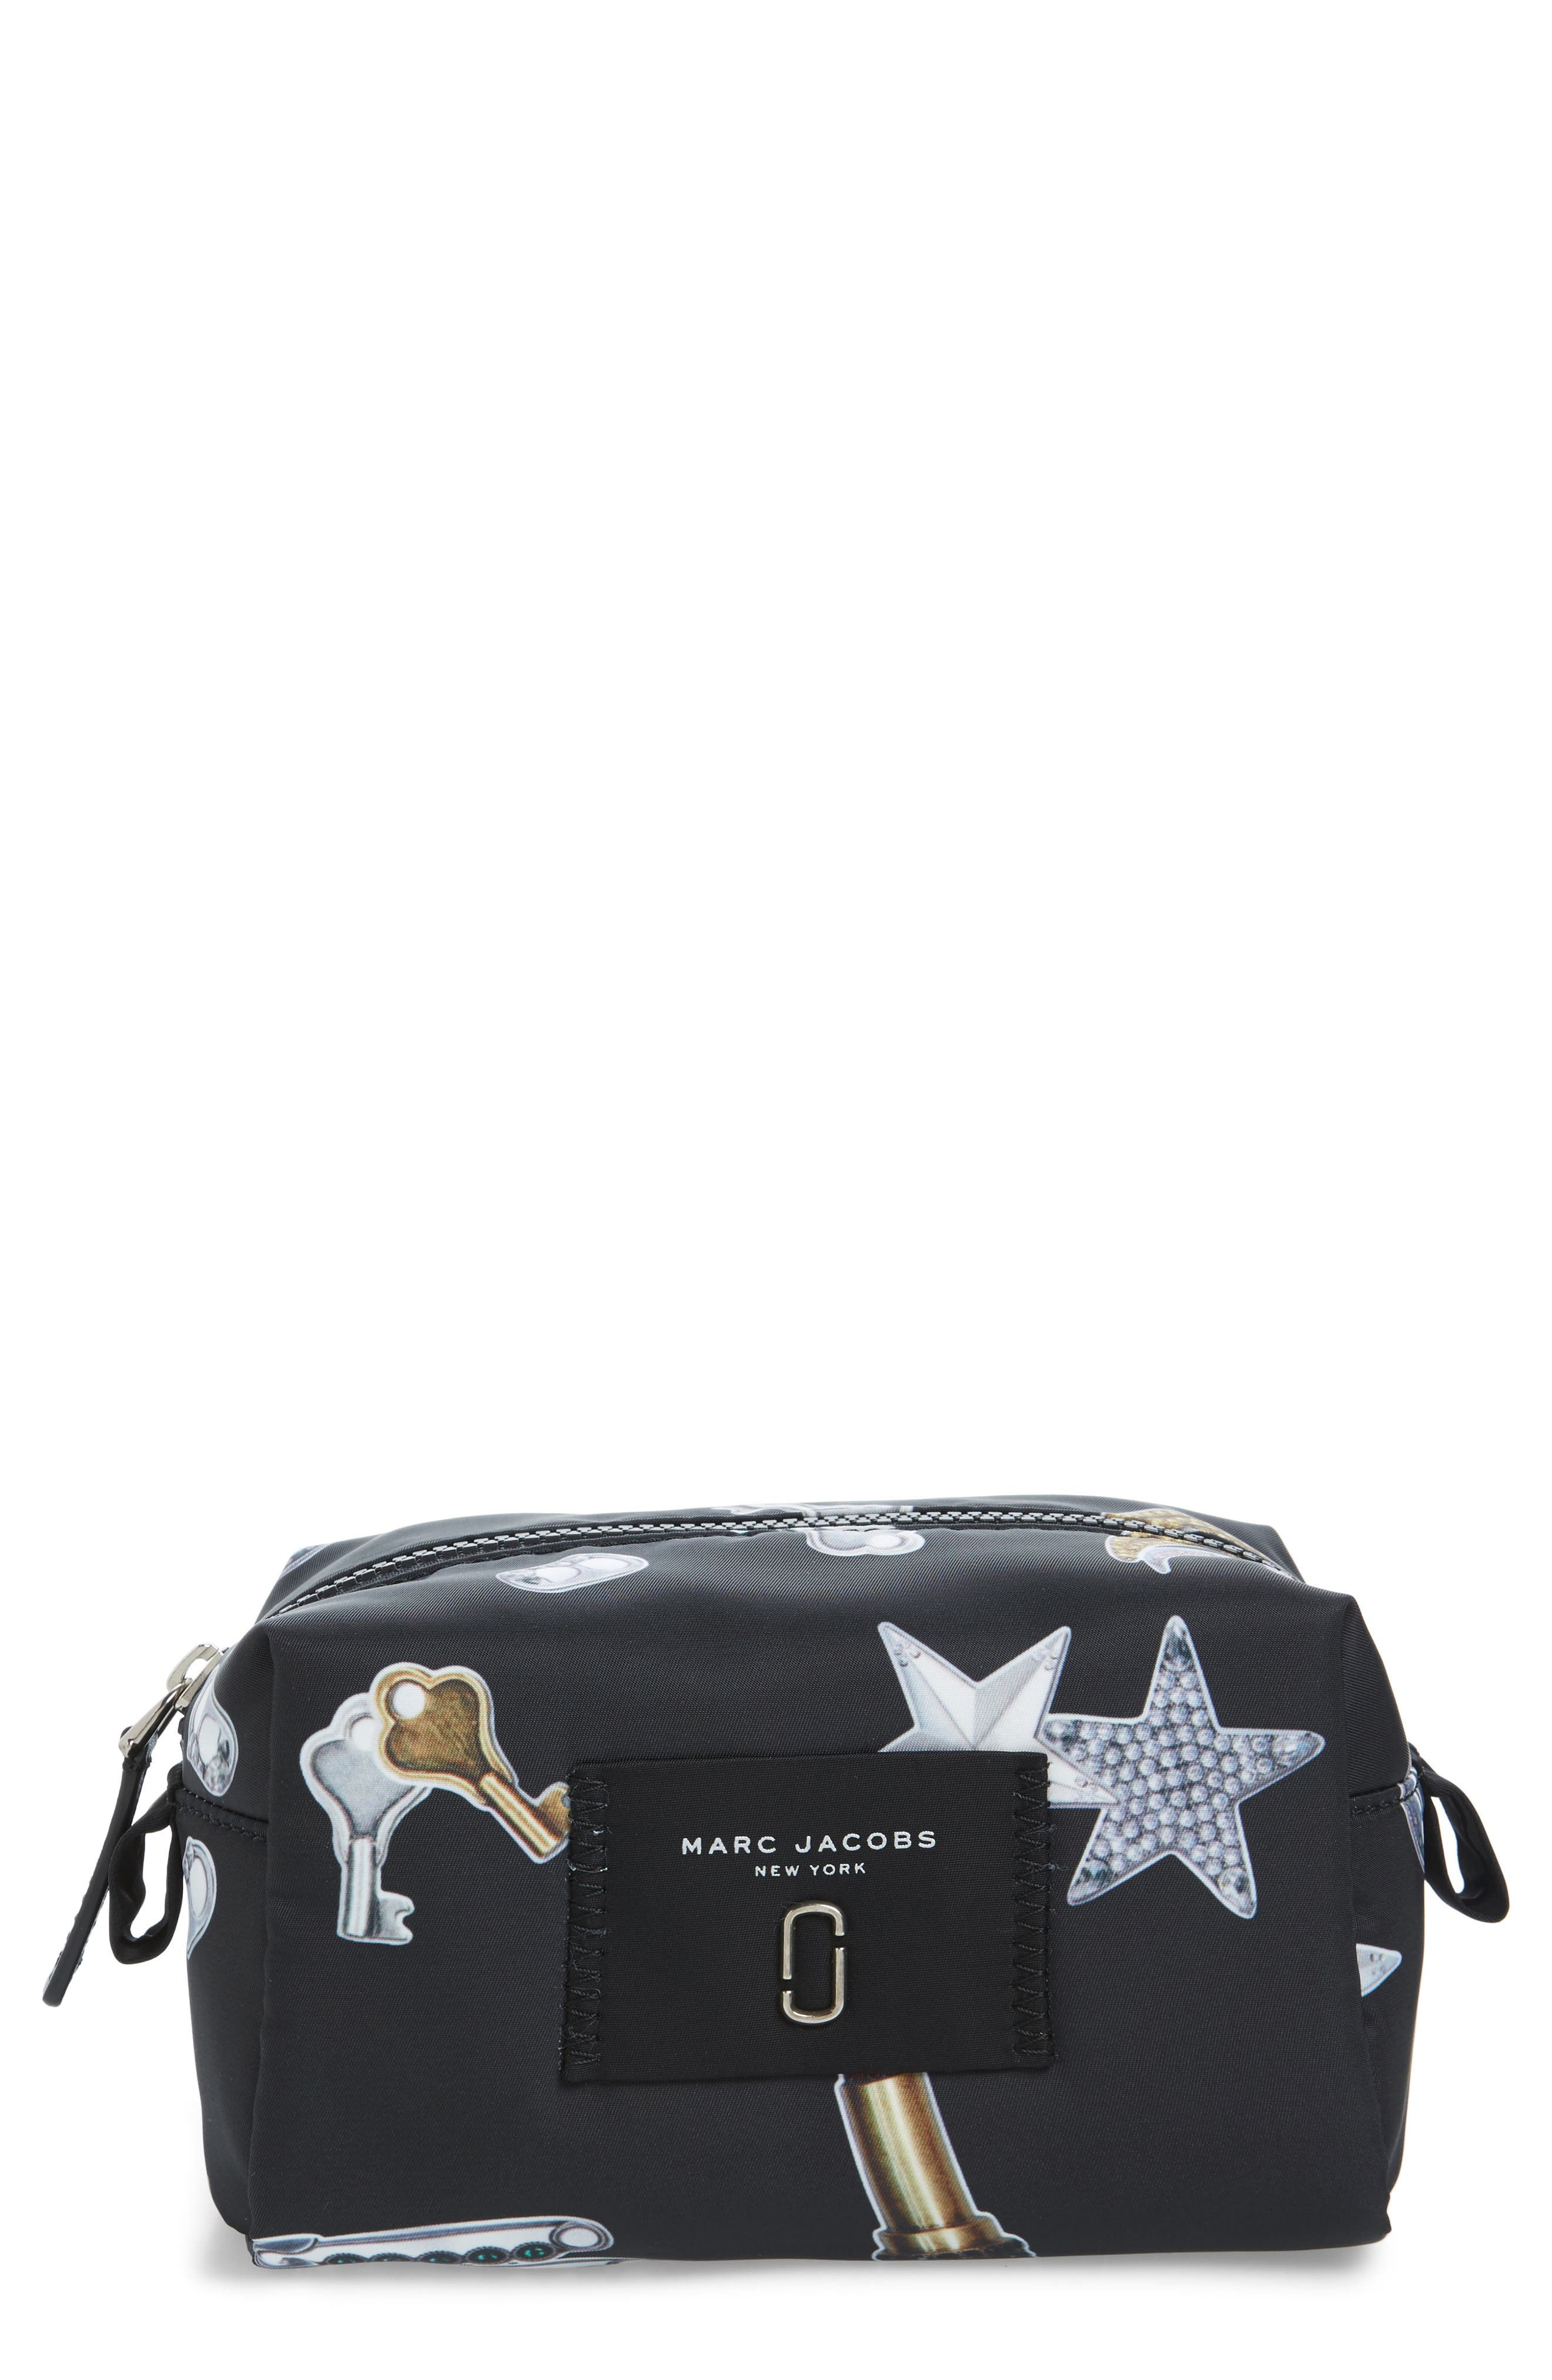 Main Image - MARC JACOBS Tossed Charms Cosmetics Case